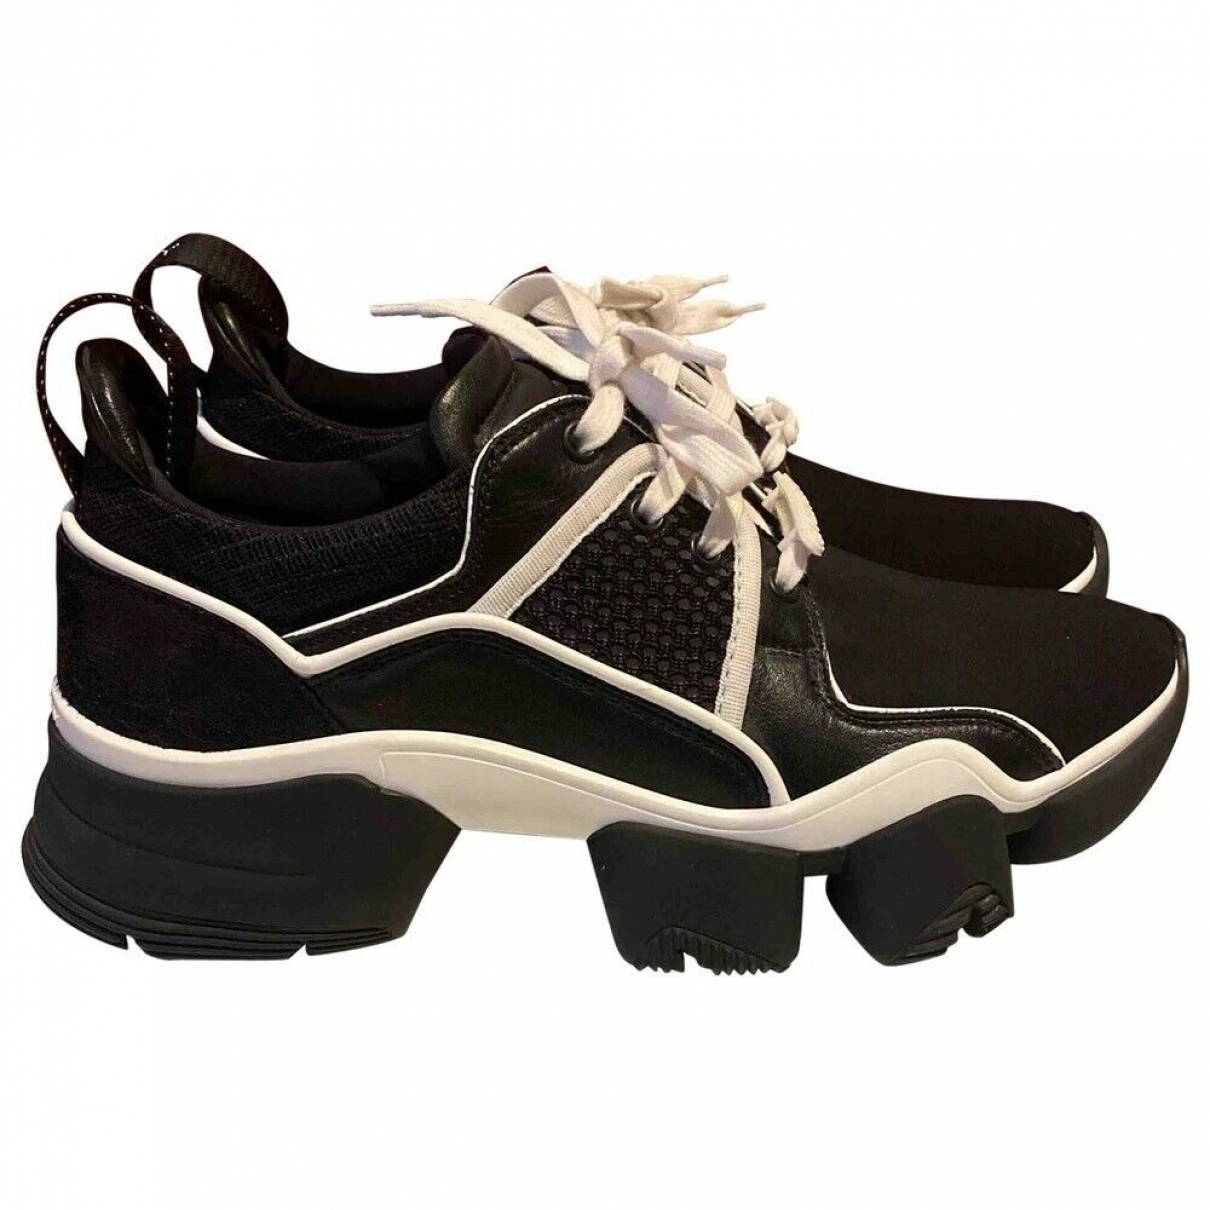 Givenchy Jaw Sneakers in  Schwarz Polyester